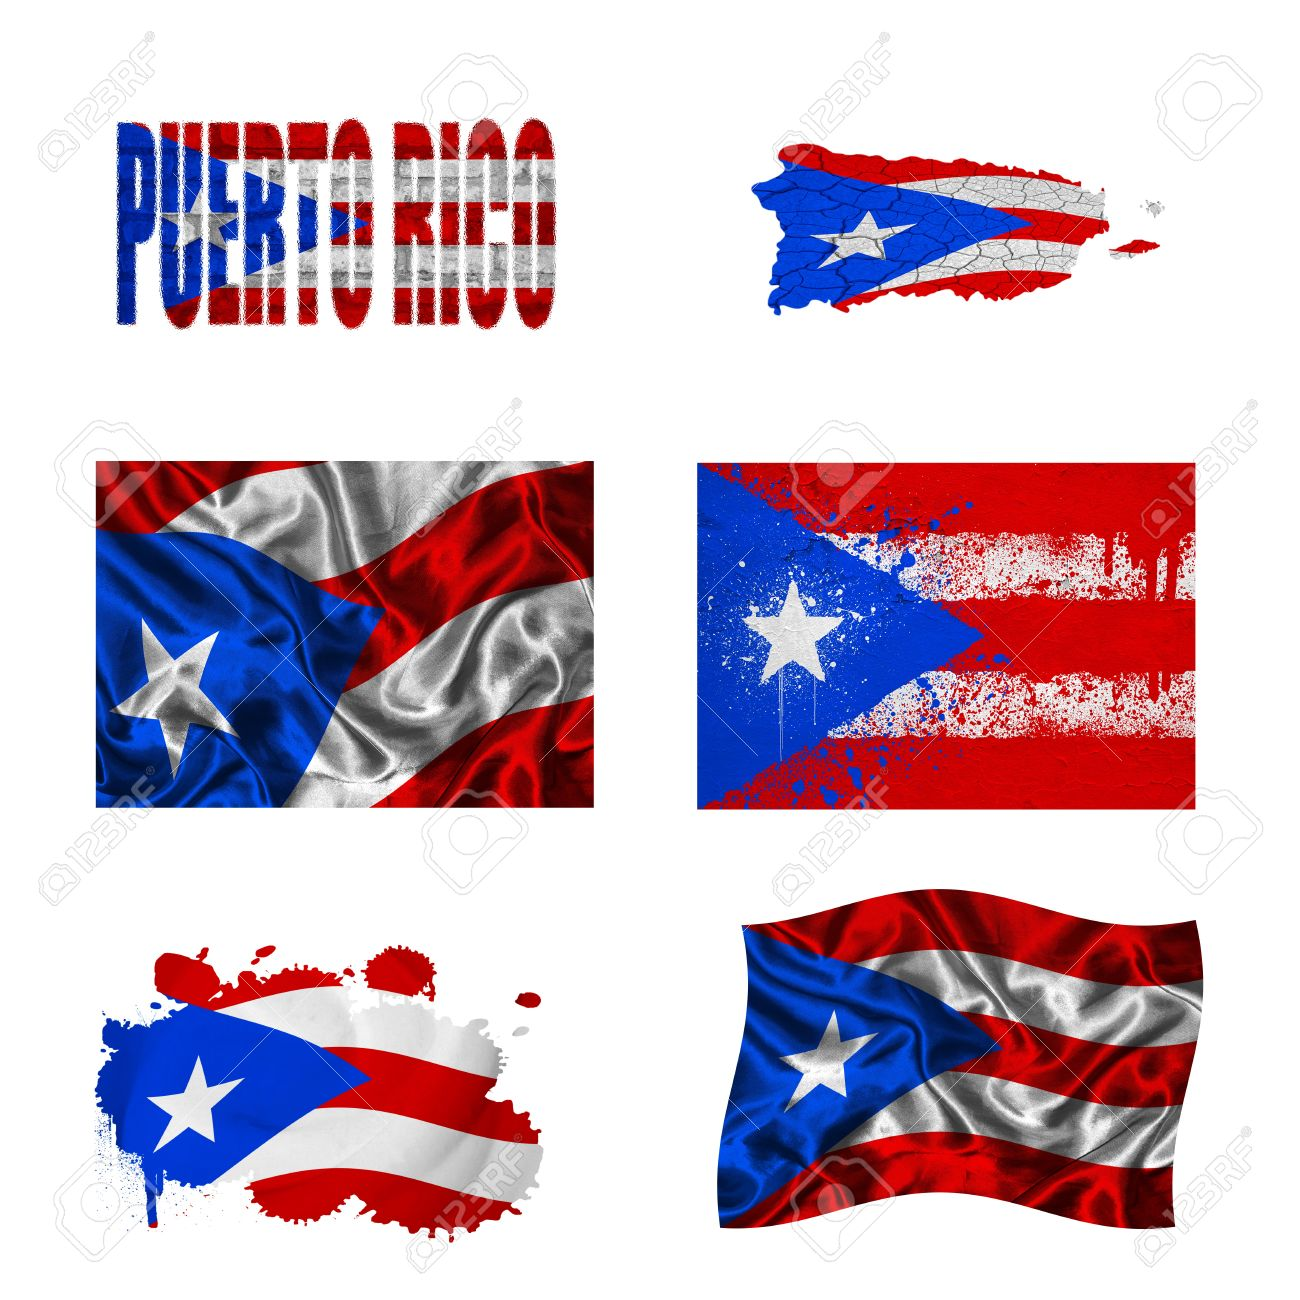 Puerto Rico Flag And Map In Different Styles In Different Textures Stock Photo 17069103